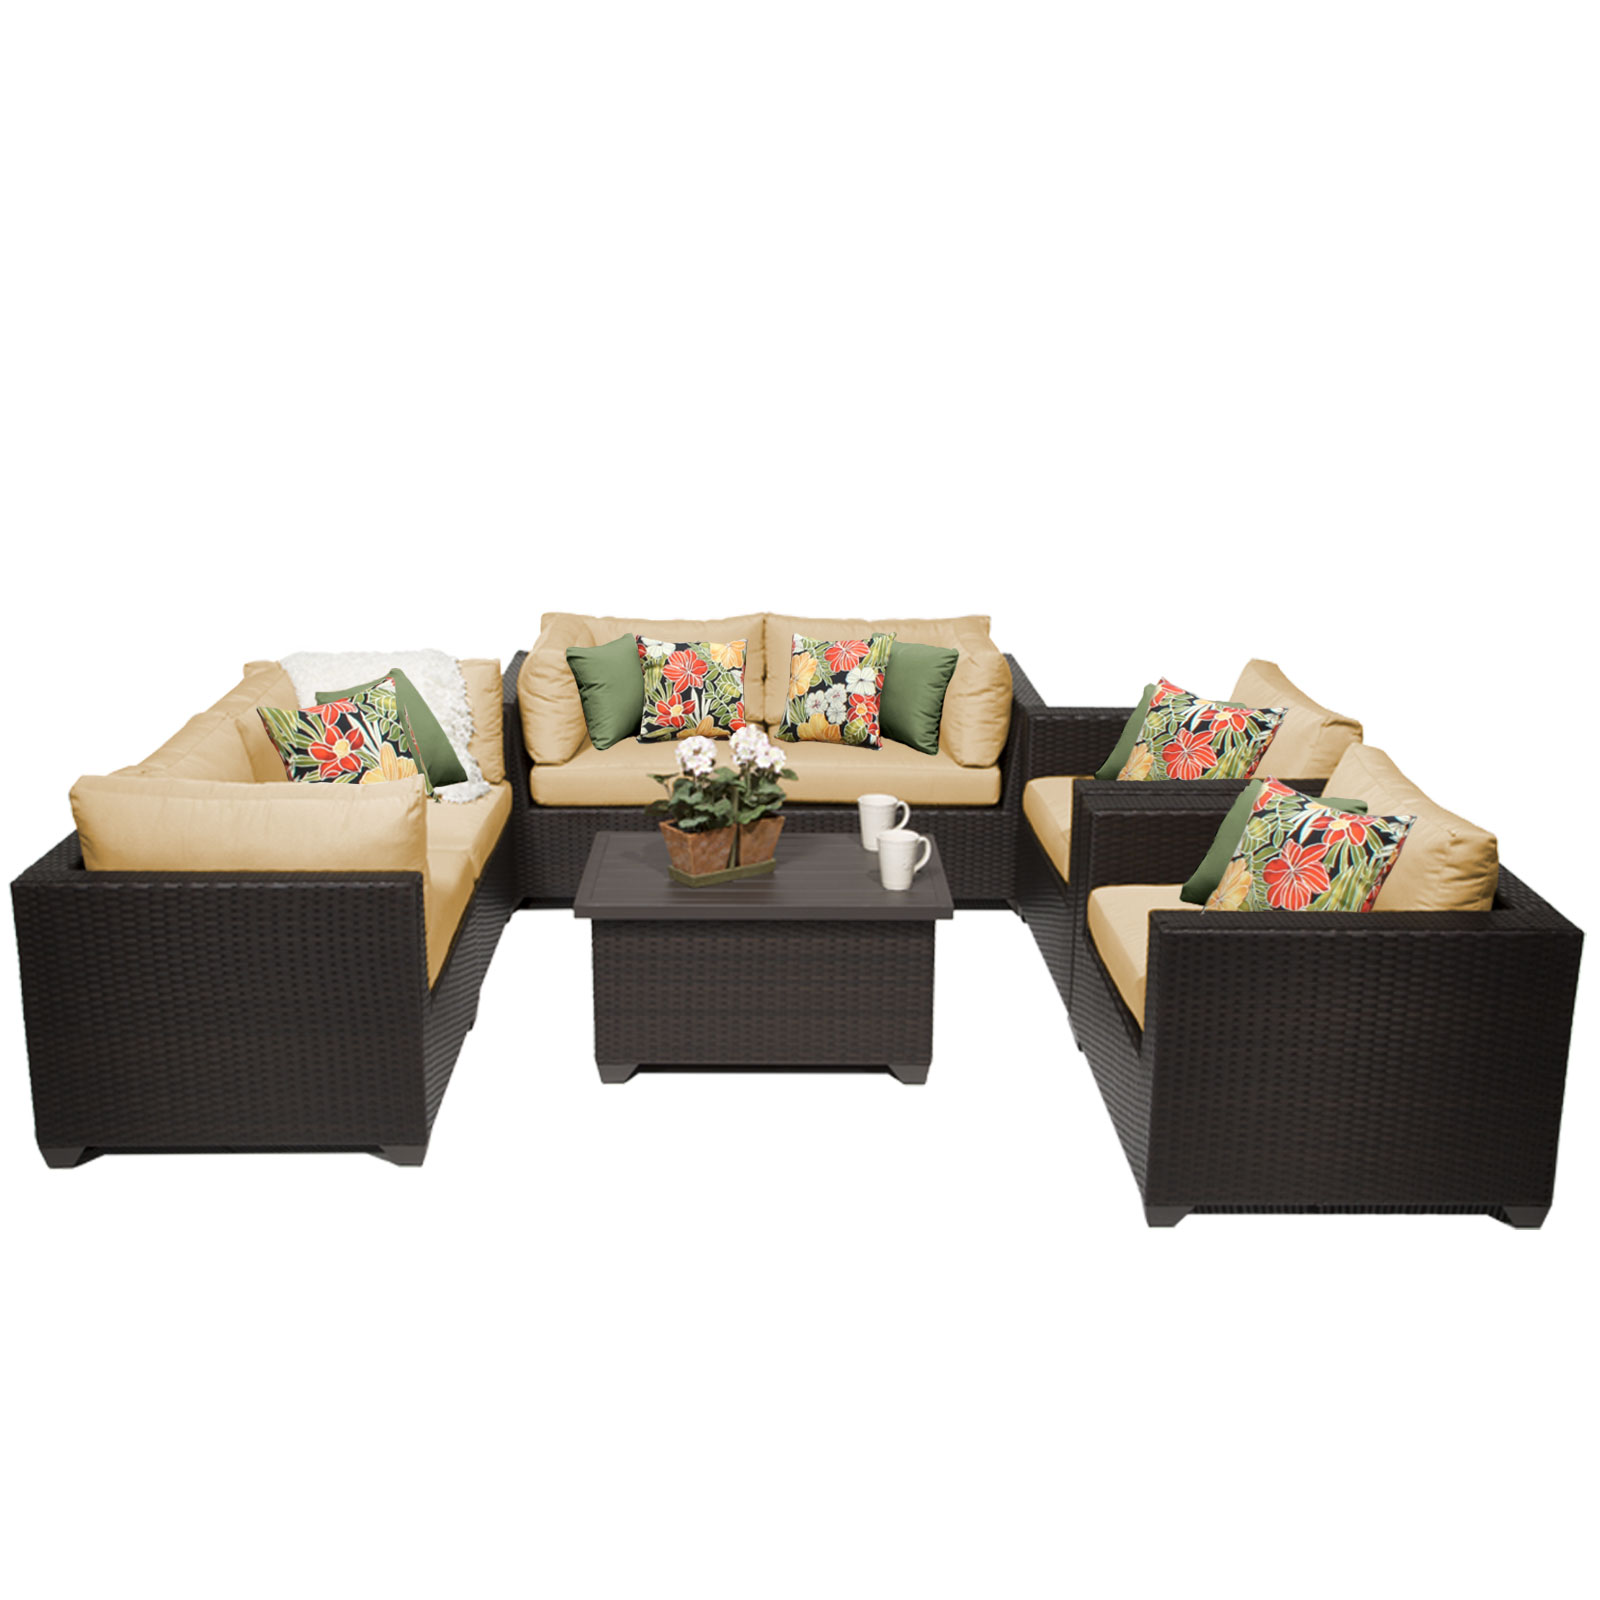 Premier 7 Piece Outdoor Wicker Patio Furniture Set 07c